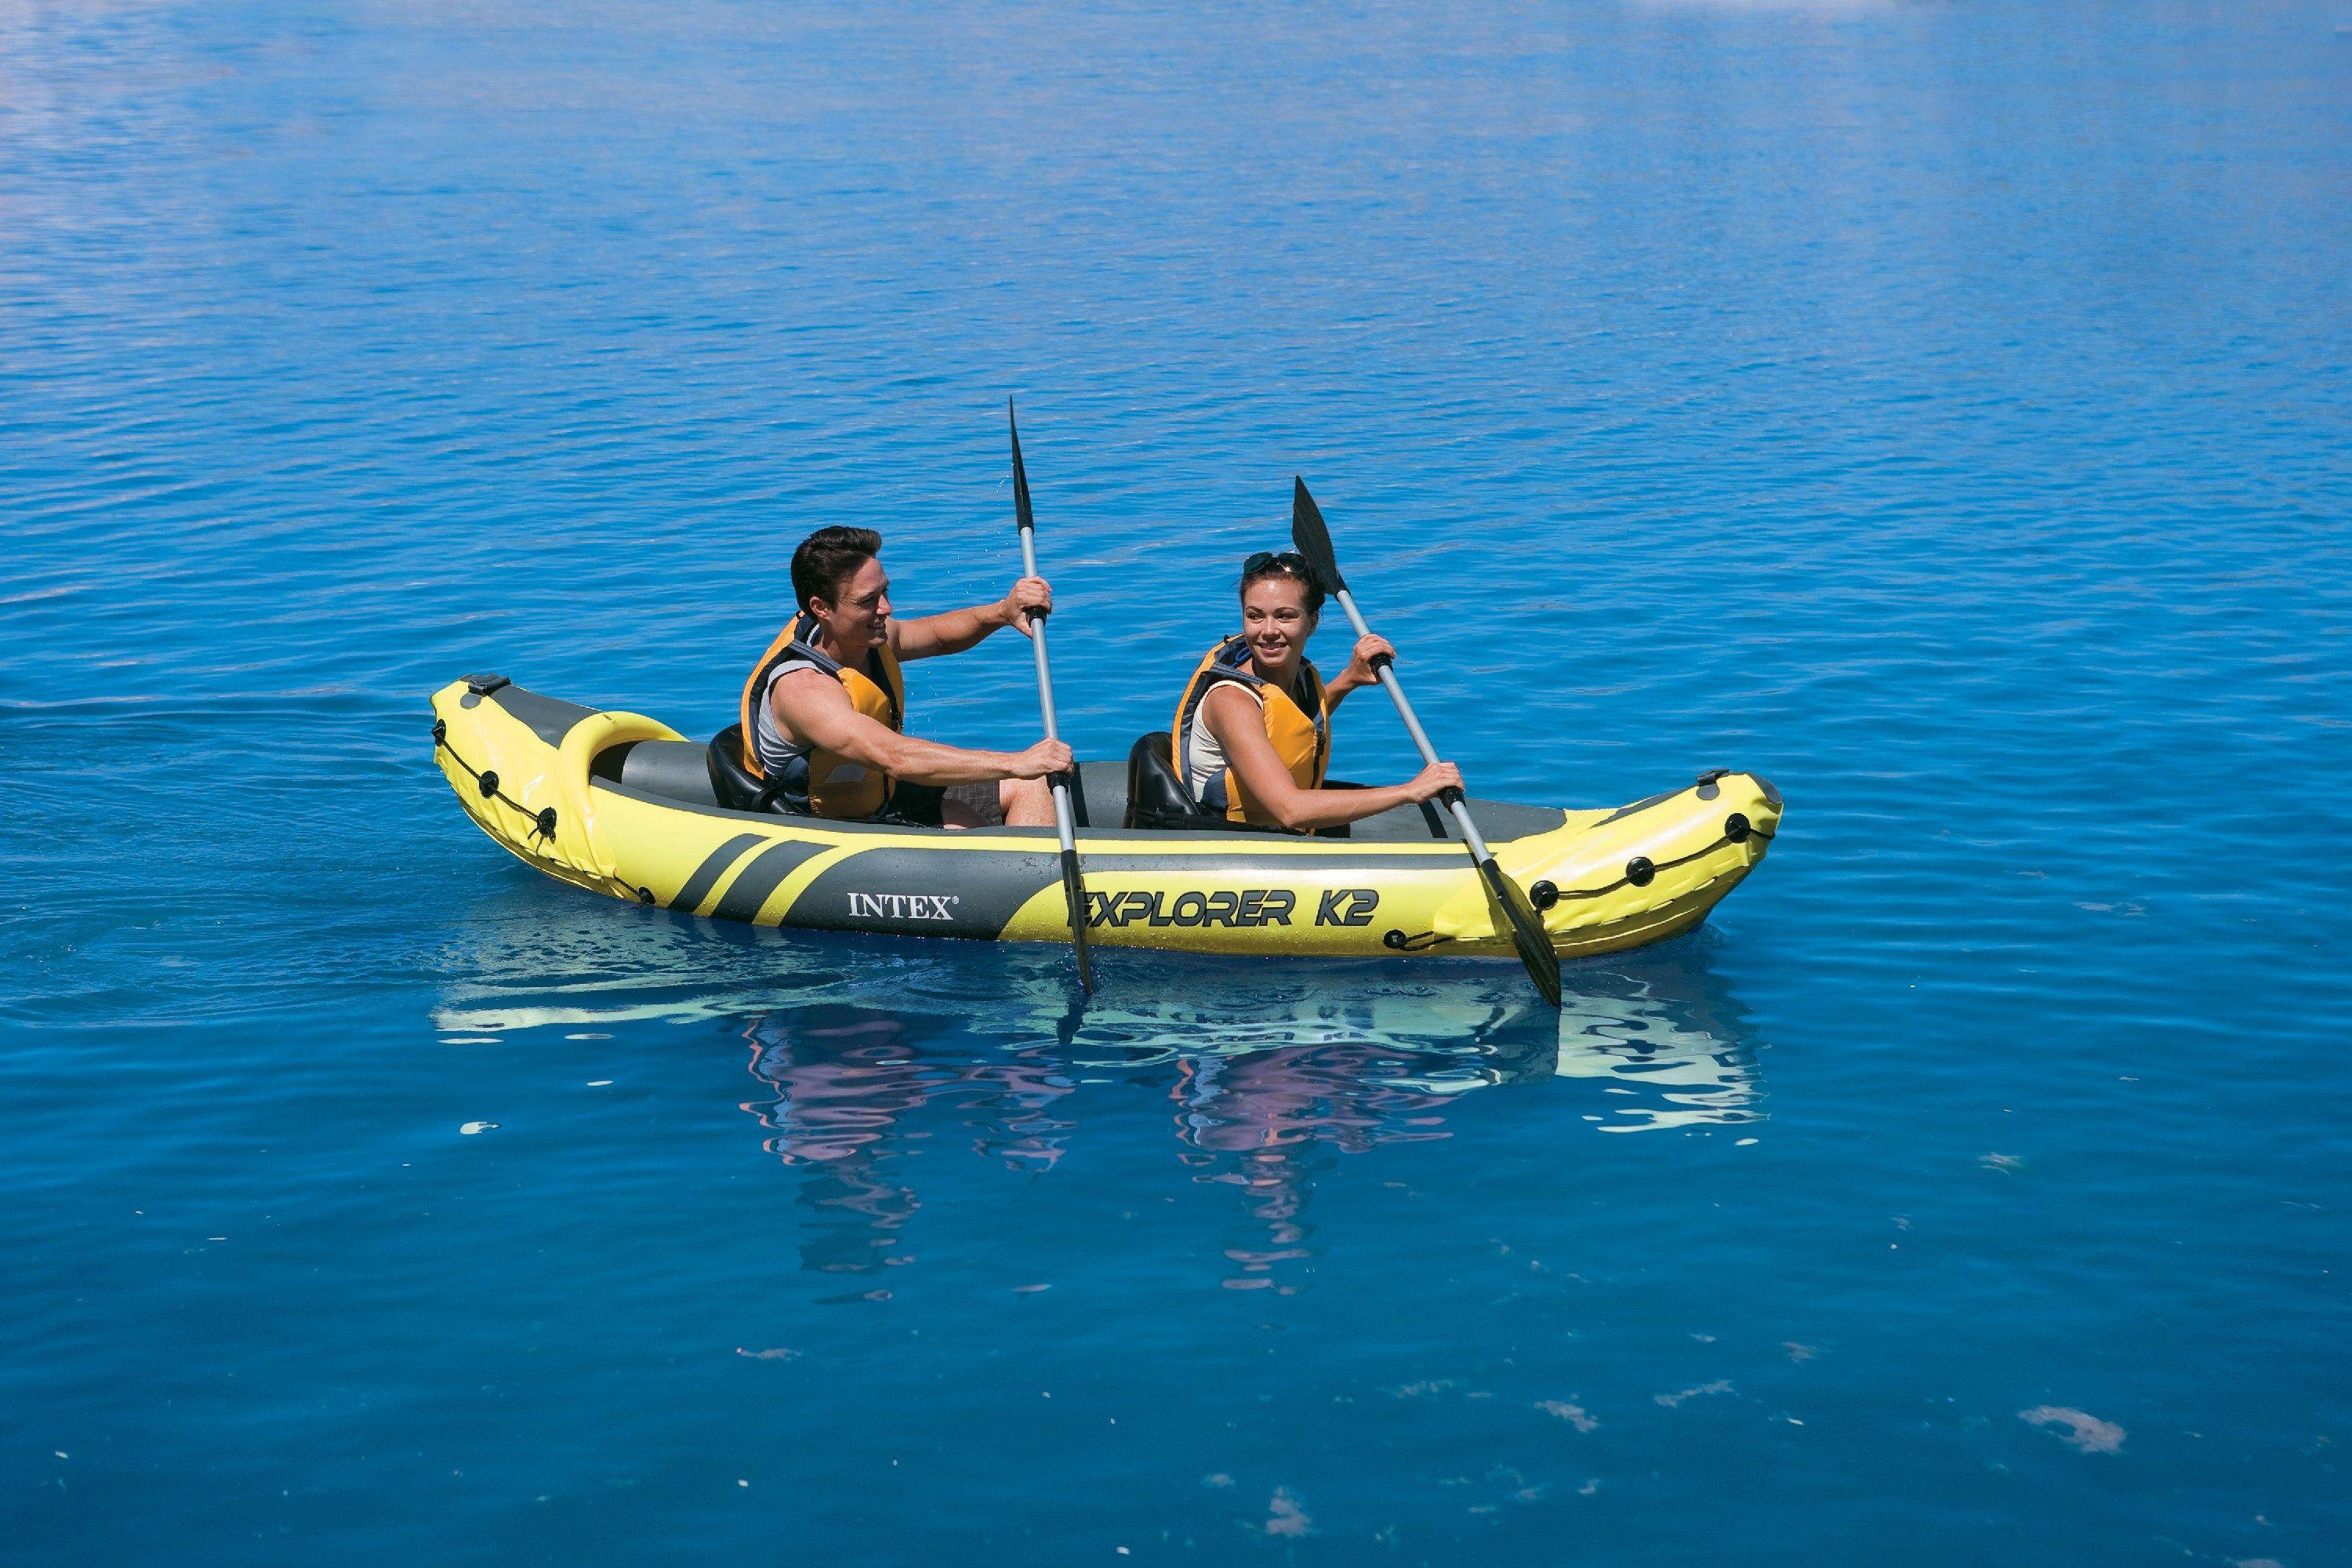 Intex Explorer K2 Kayak - Yellow and Black